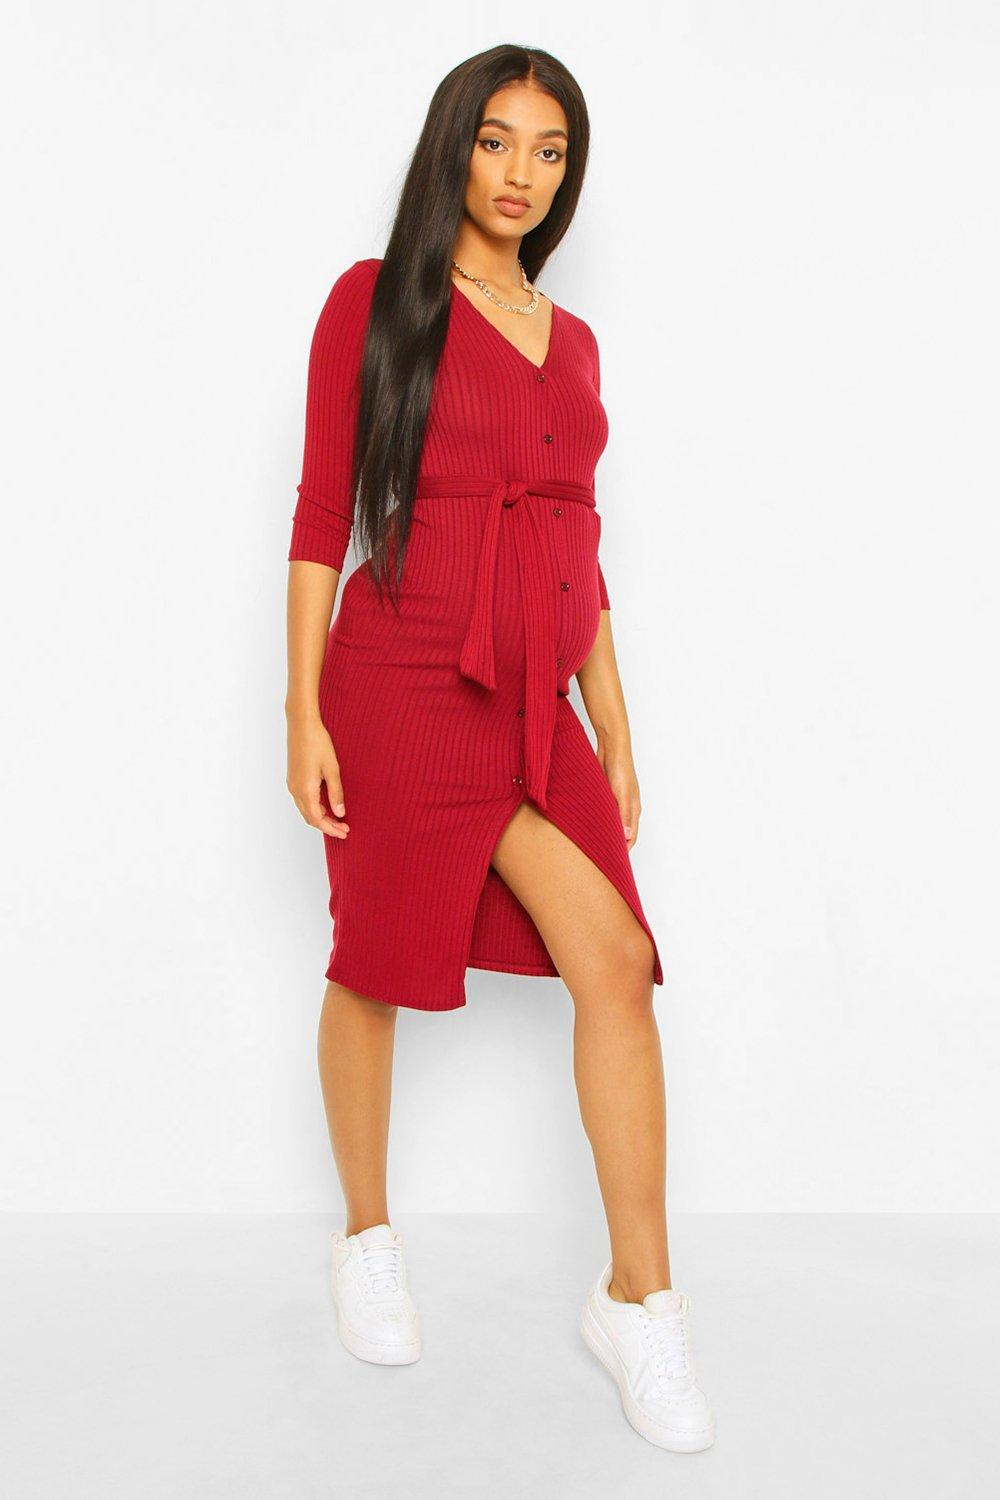 Vintage Maternity Dresses and Clothes Womens Maternity Button Front Tie Waist Midi Dress - Red - 12 $16.80 AT vintagedancer.com